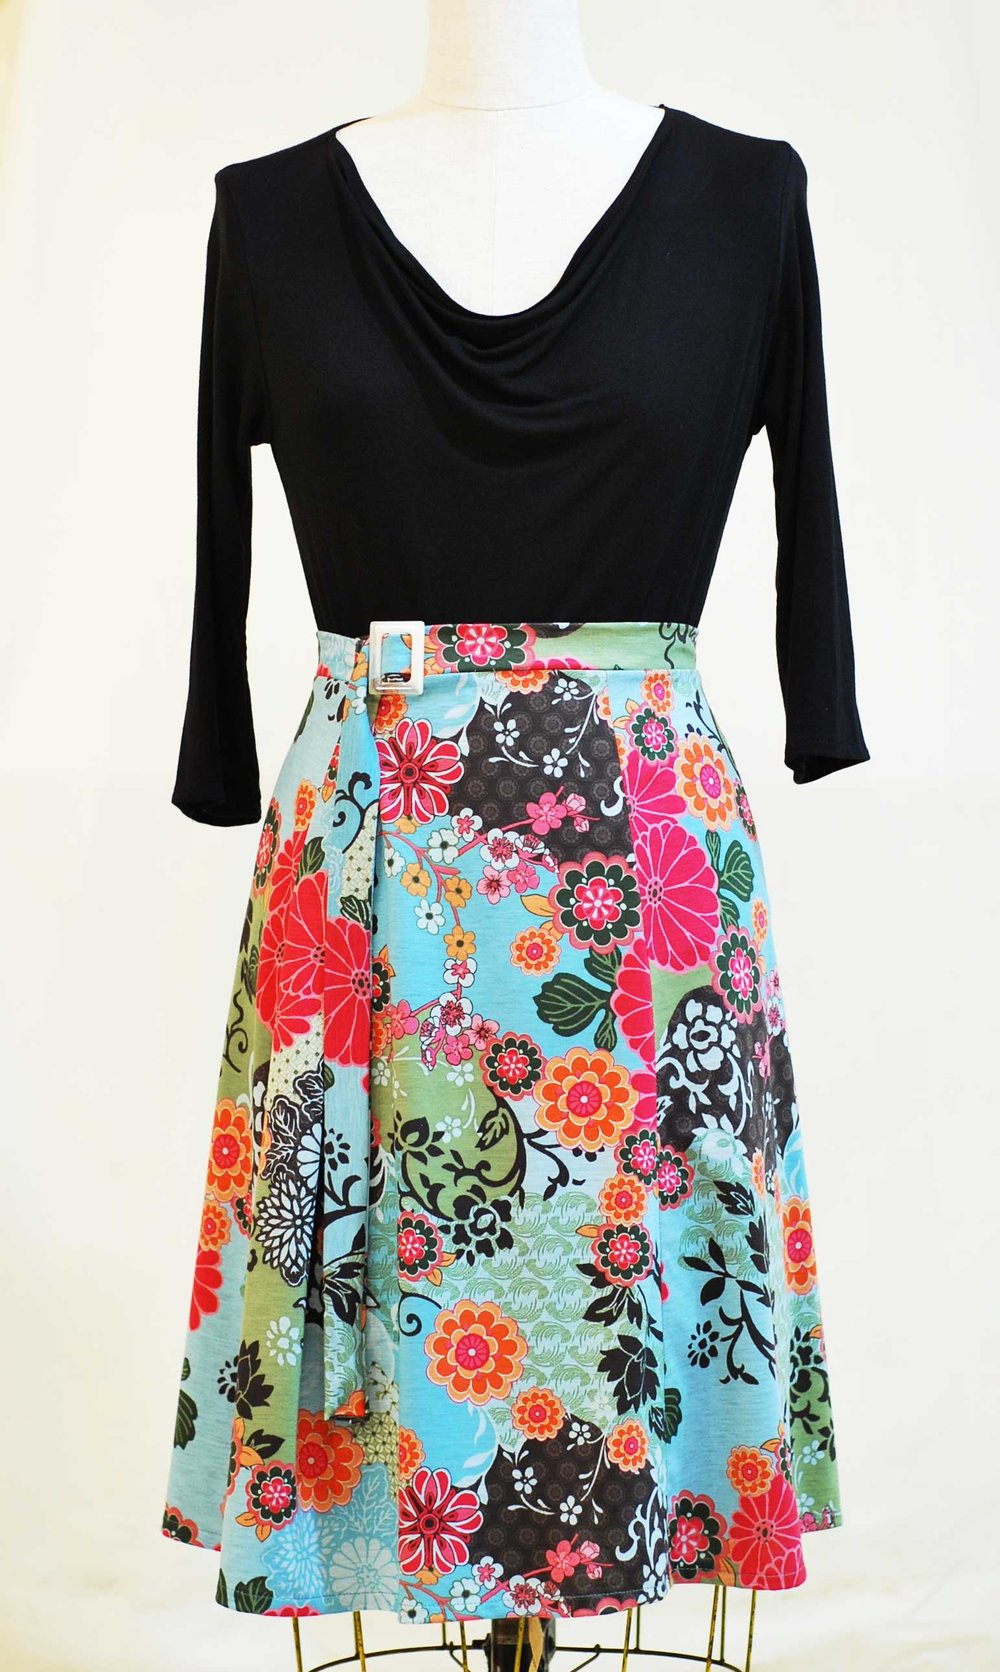 rayon knit drape neckline top and cotton print wrap skirt-  1 skirt  SOLD- 3 available  top sold - can be custom ordered